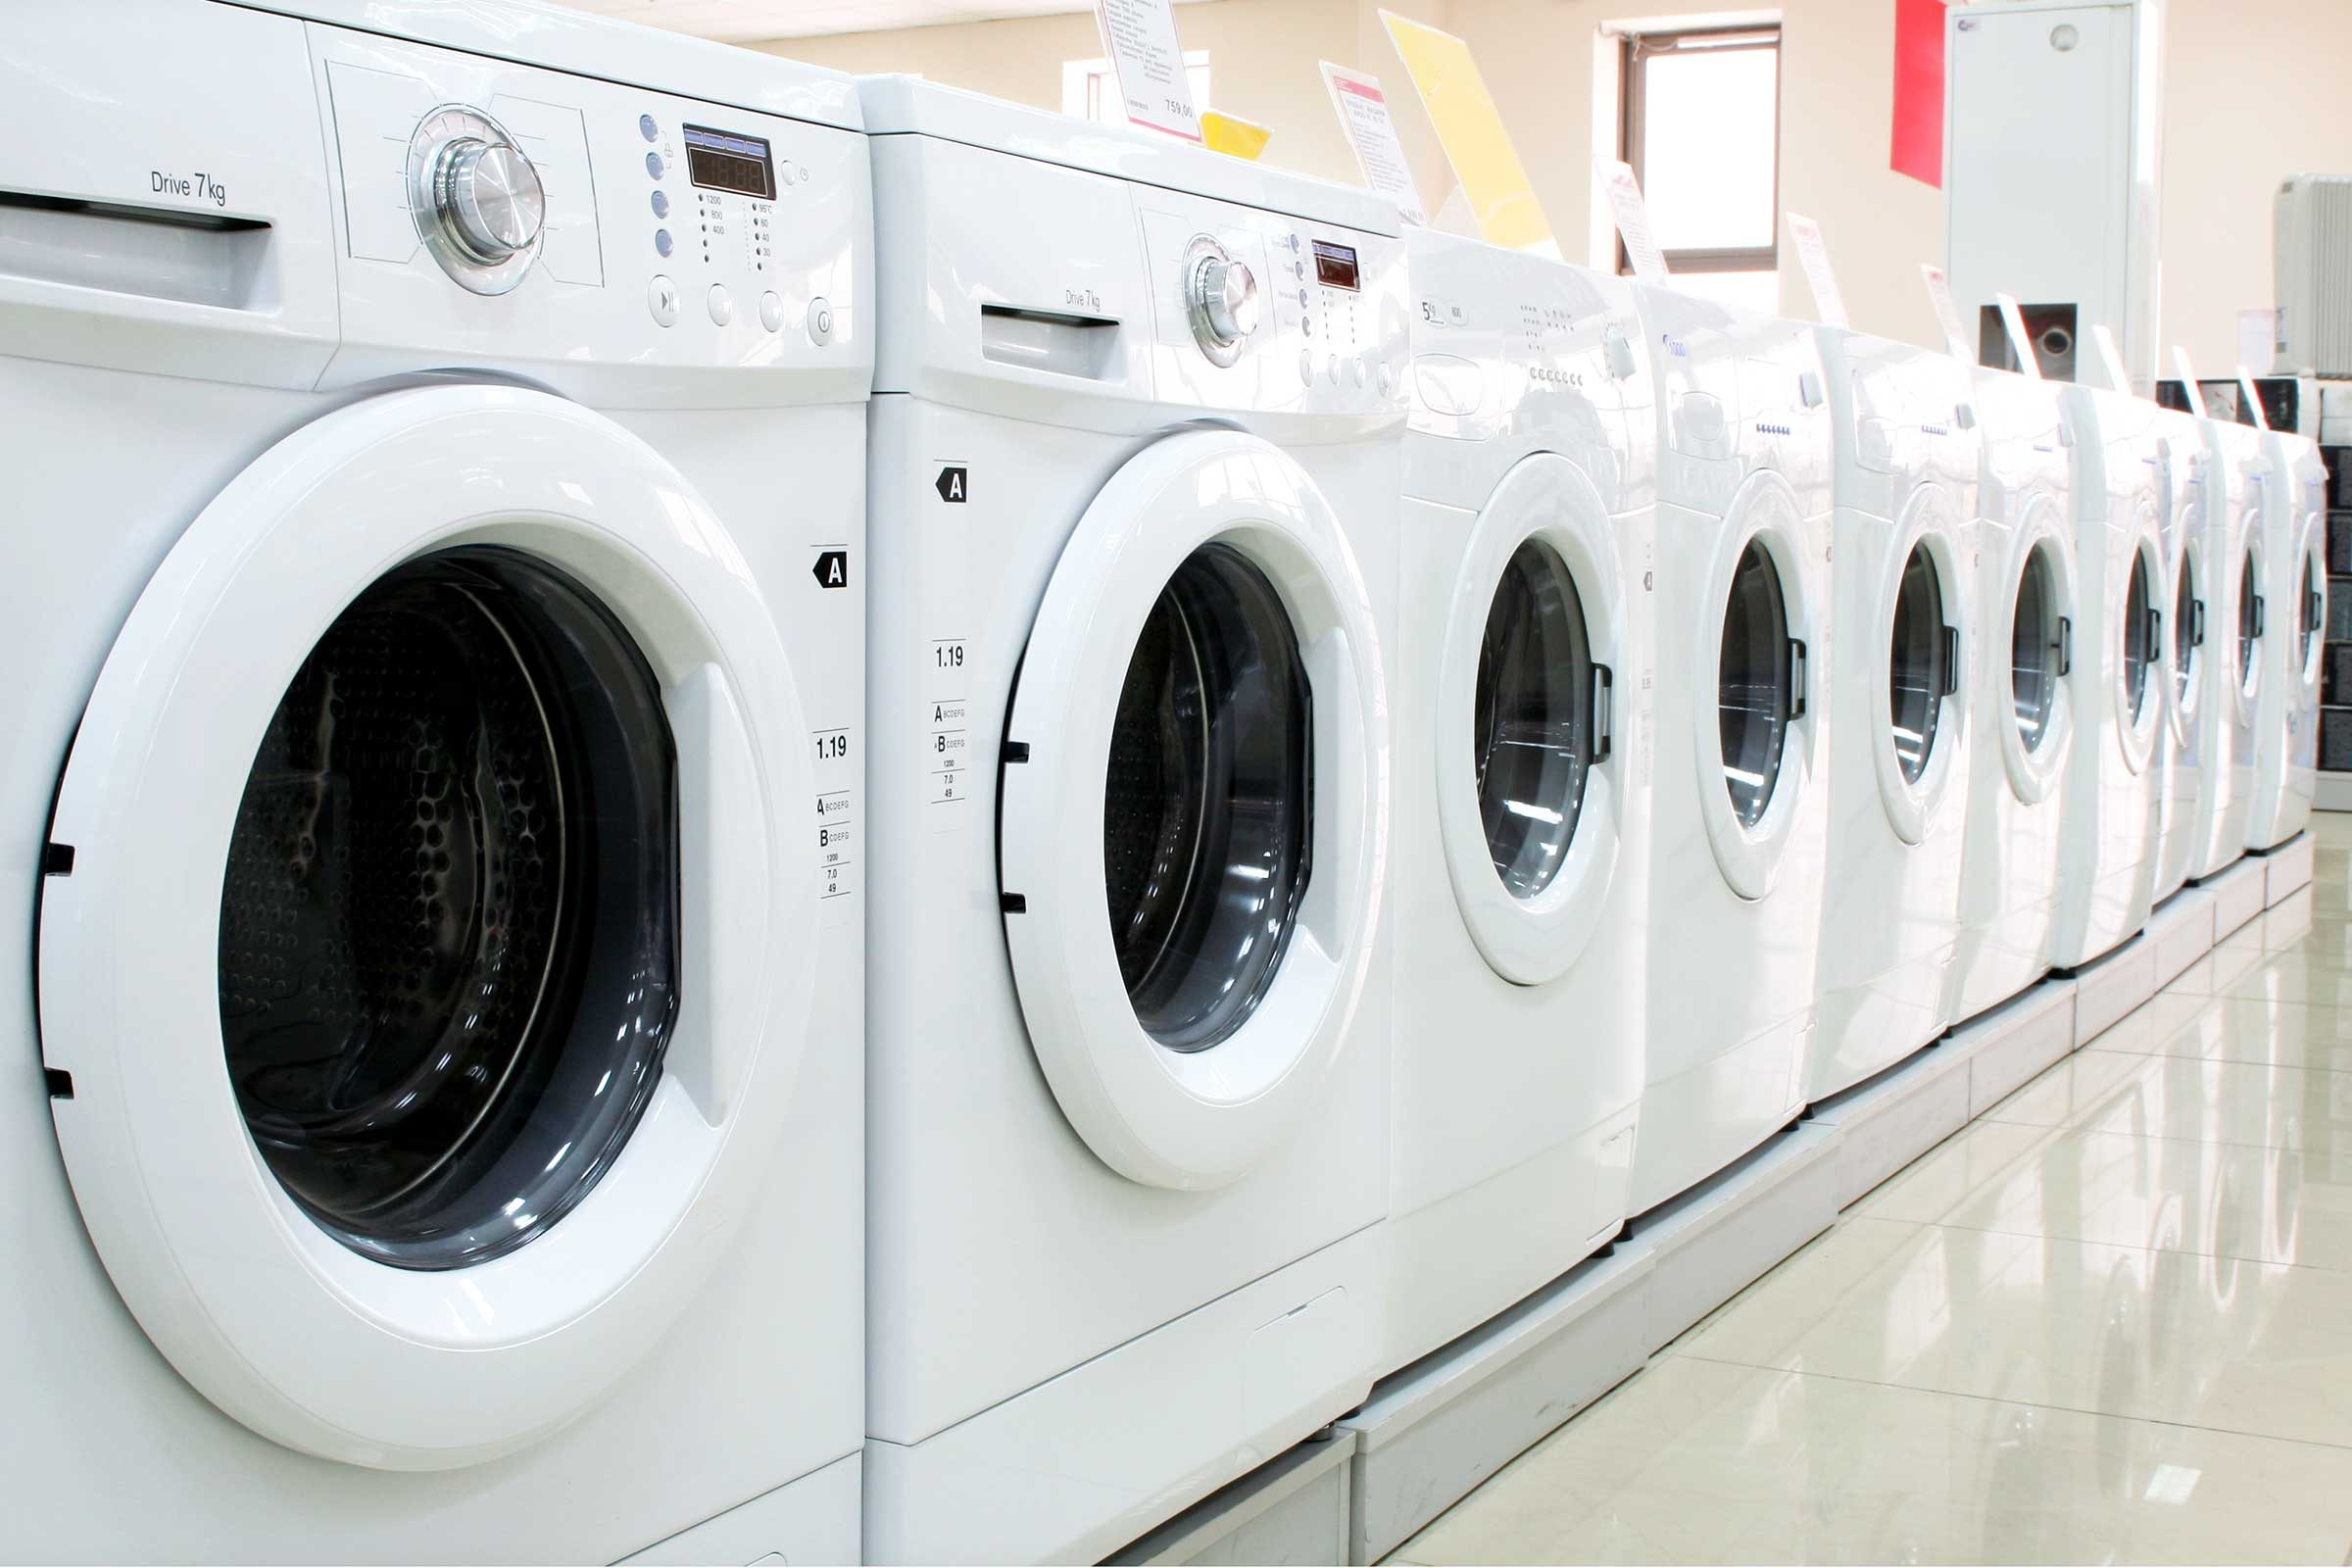 Laundry facts 9 that will surprise you reader 39 s digest - Interesting facts about washing machines ...